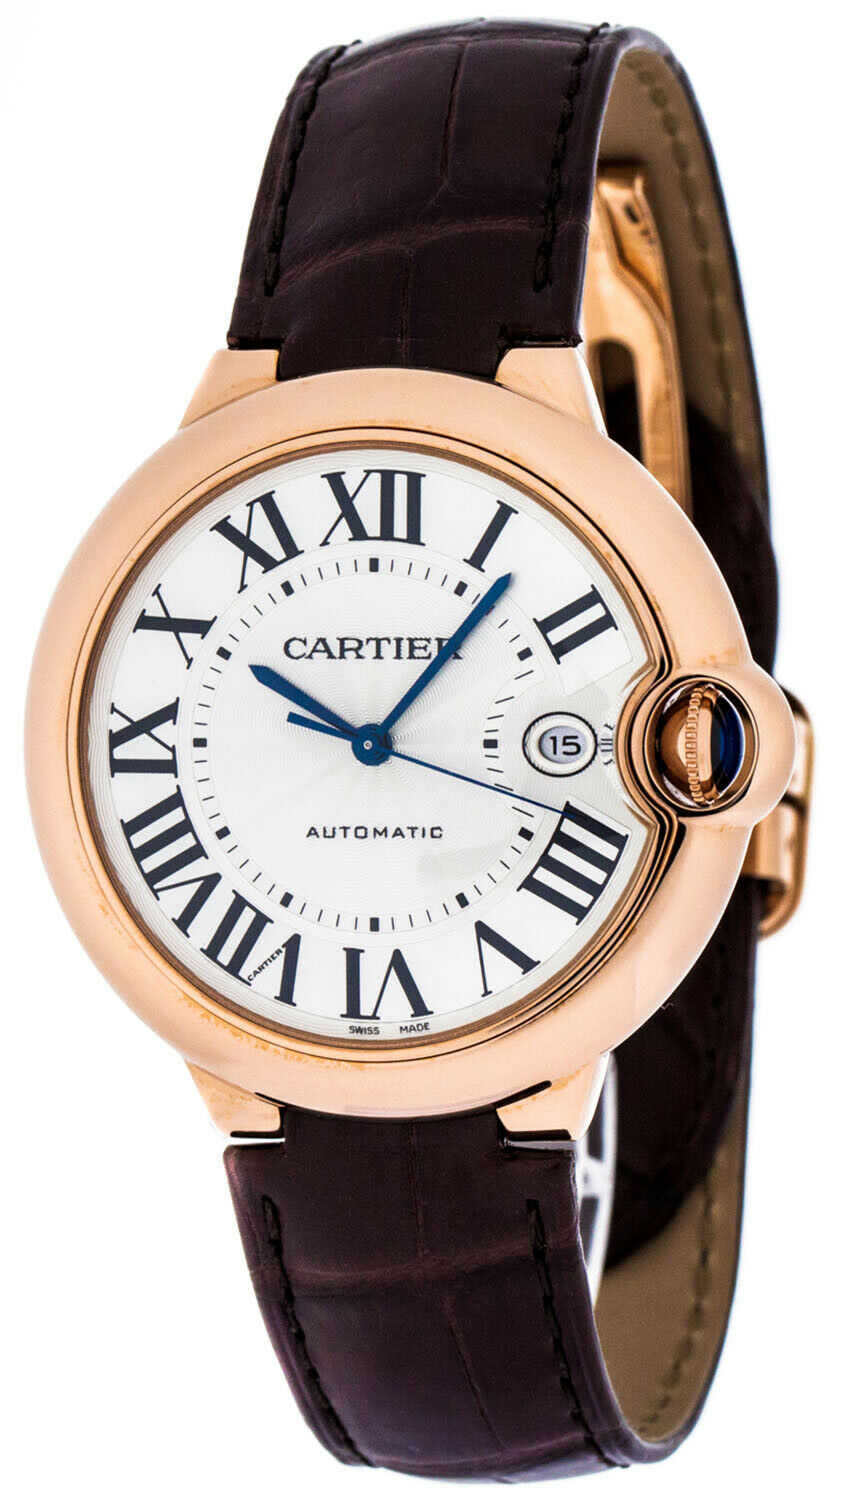 89d56b79181d Cartier Ballon Bleu 18k Rosegold Brown Leather Auto Men s Watch ...